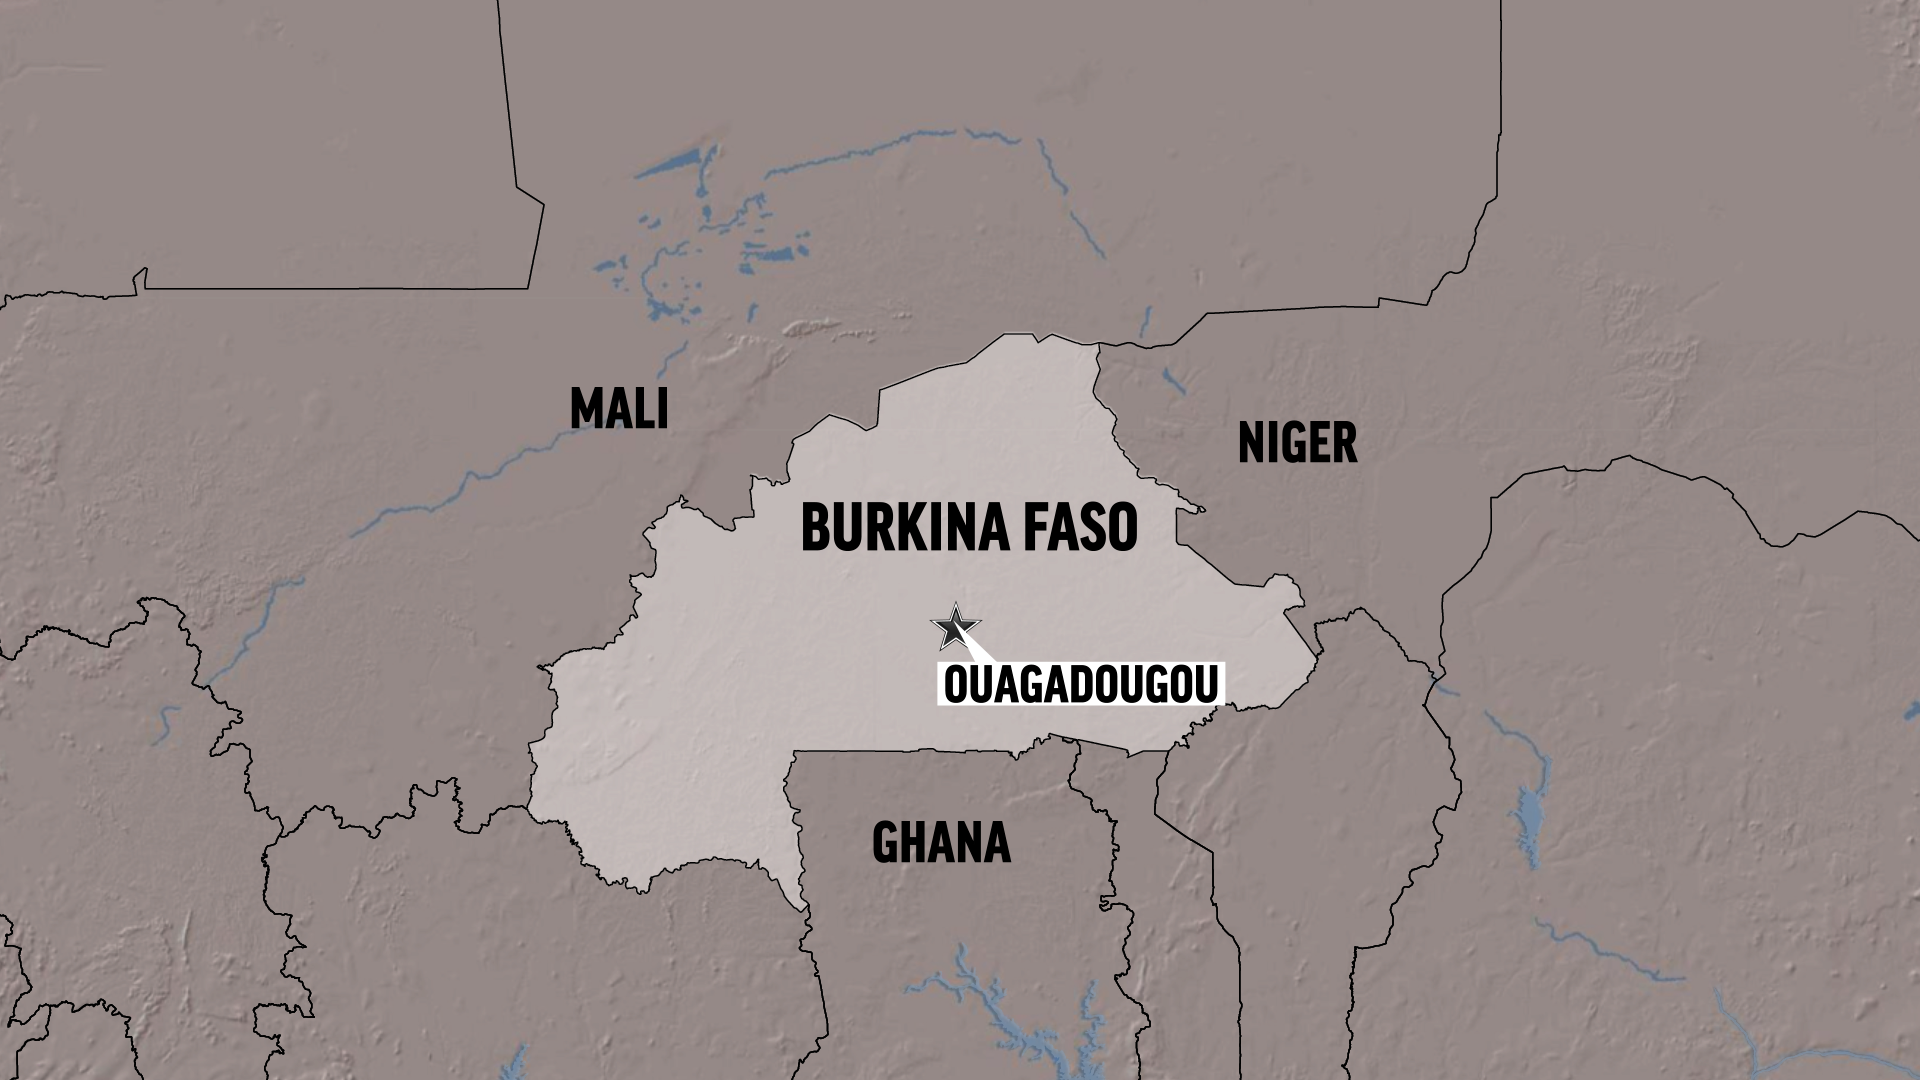 'Heavy fire' in Burkina Faso restaurant attack